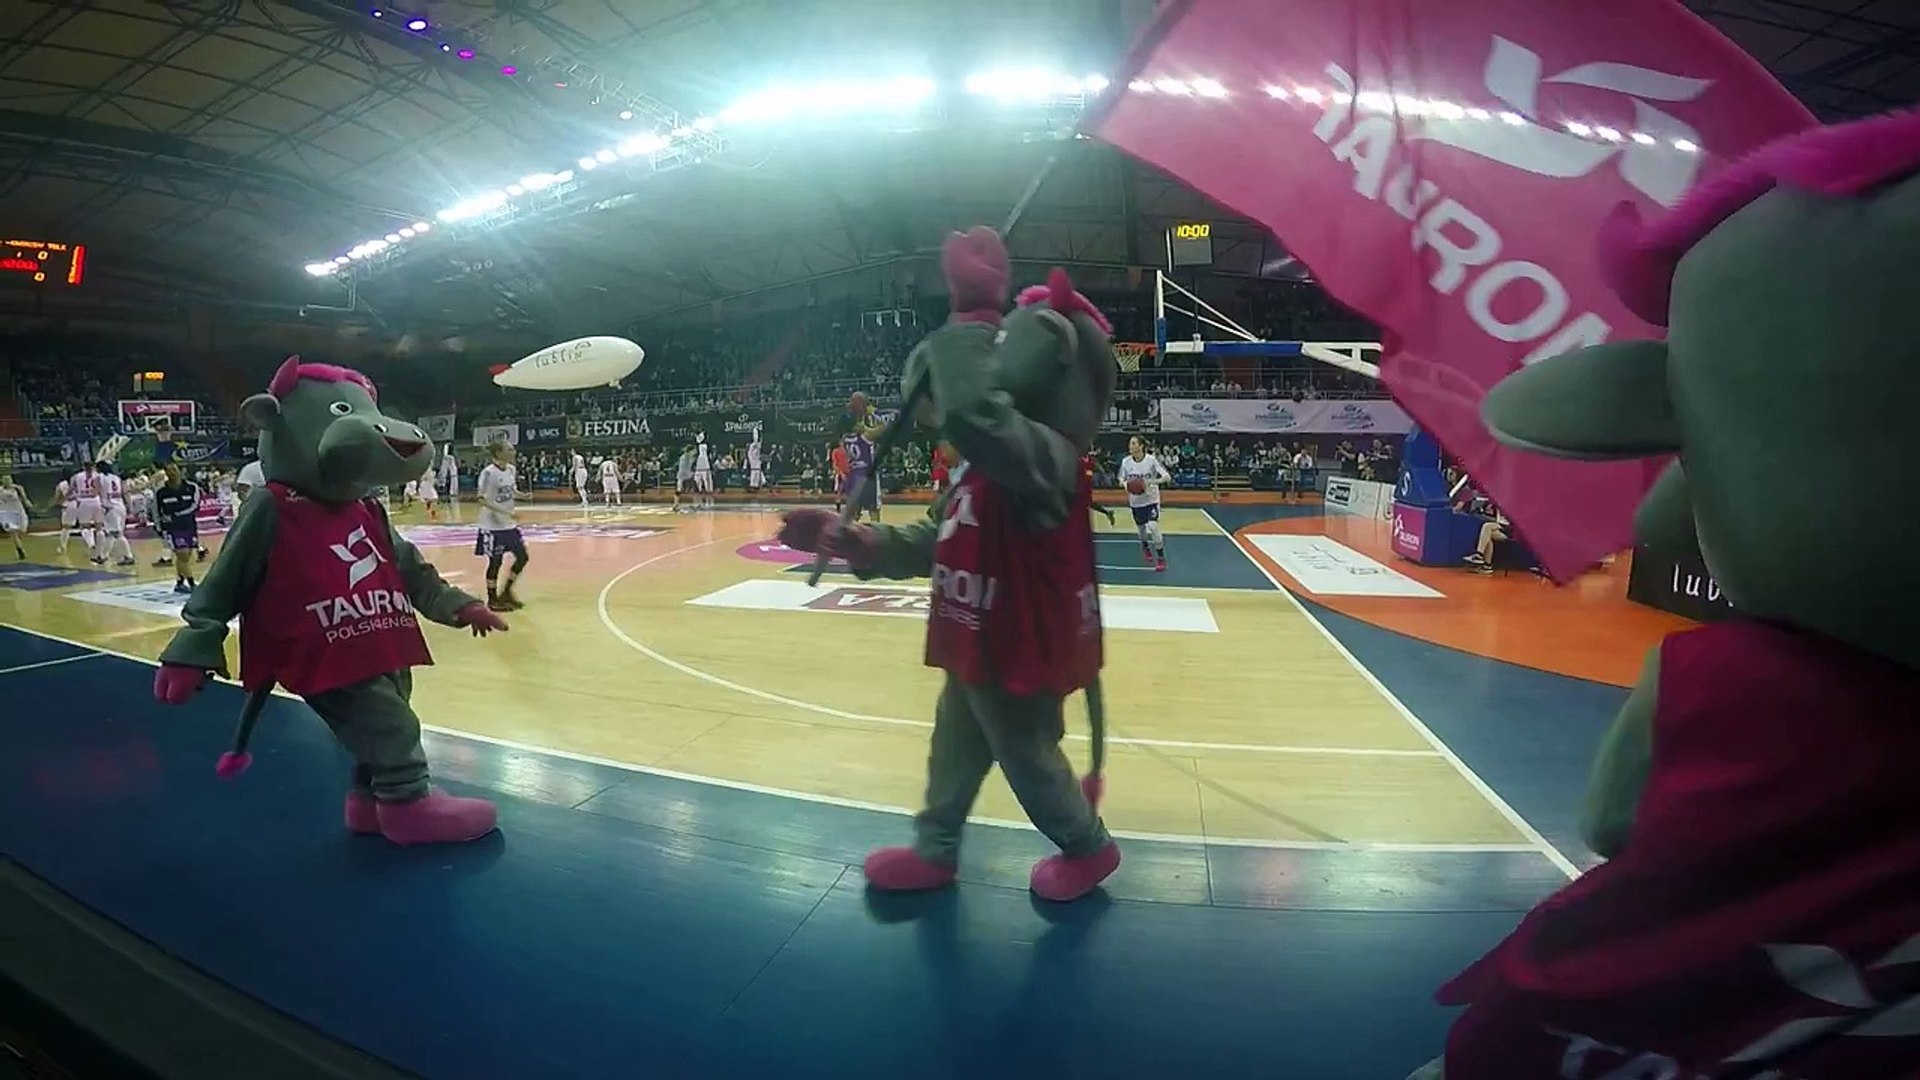 Behind the scenes video of The 2015 Polish League All-Star Game!